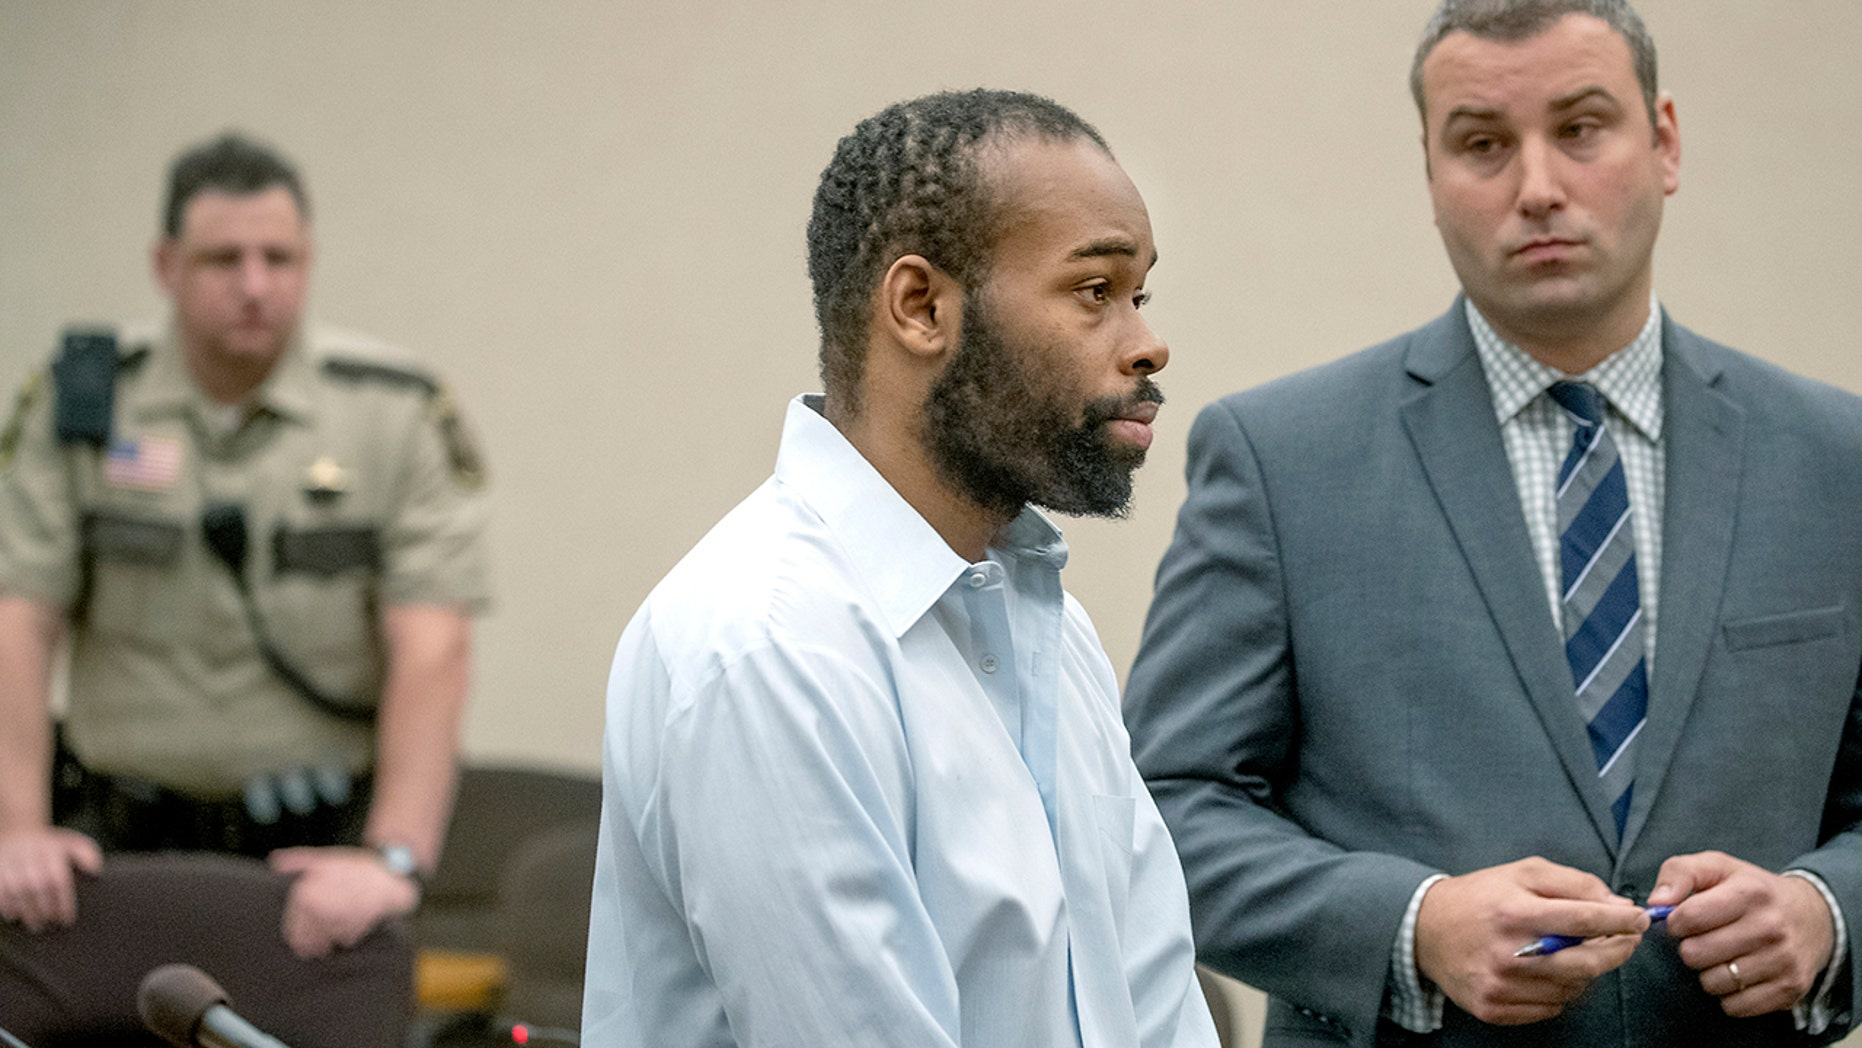 Emmanuel Aranda, who threw a 5-year-old boy over a Mall of America balcony, and his lawyer Paul Sellers, right, listen as Judge Jeannice Reding hands out a 19-year sentence at the Hennepin County Government Center, Monday, in Minneapolis. (Elizabeth Flores/Star Tribune via AP)